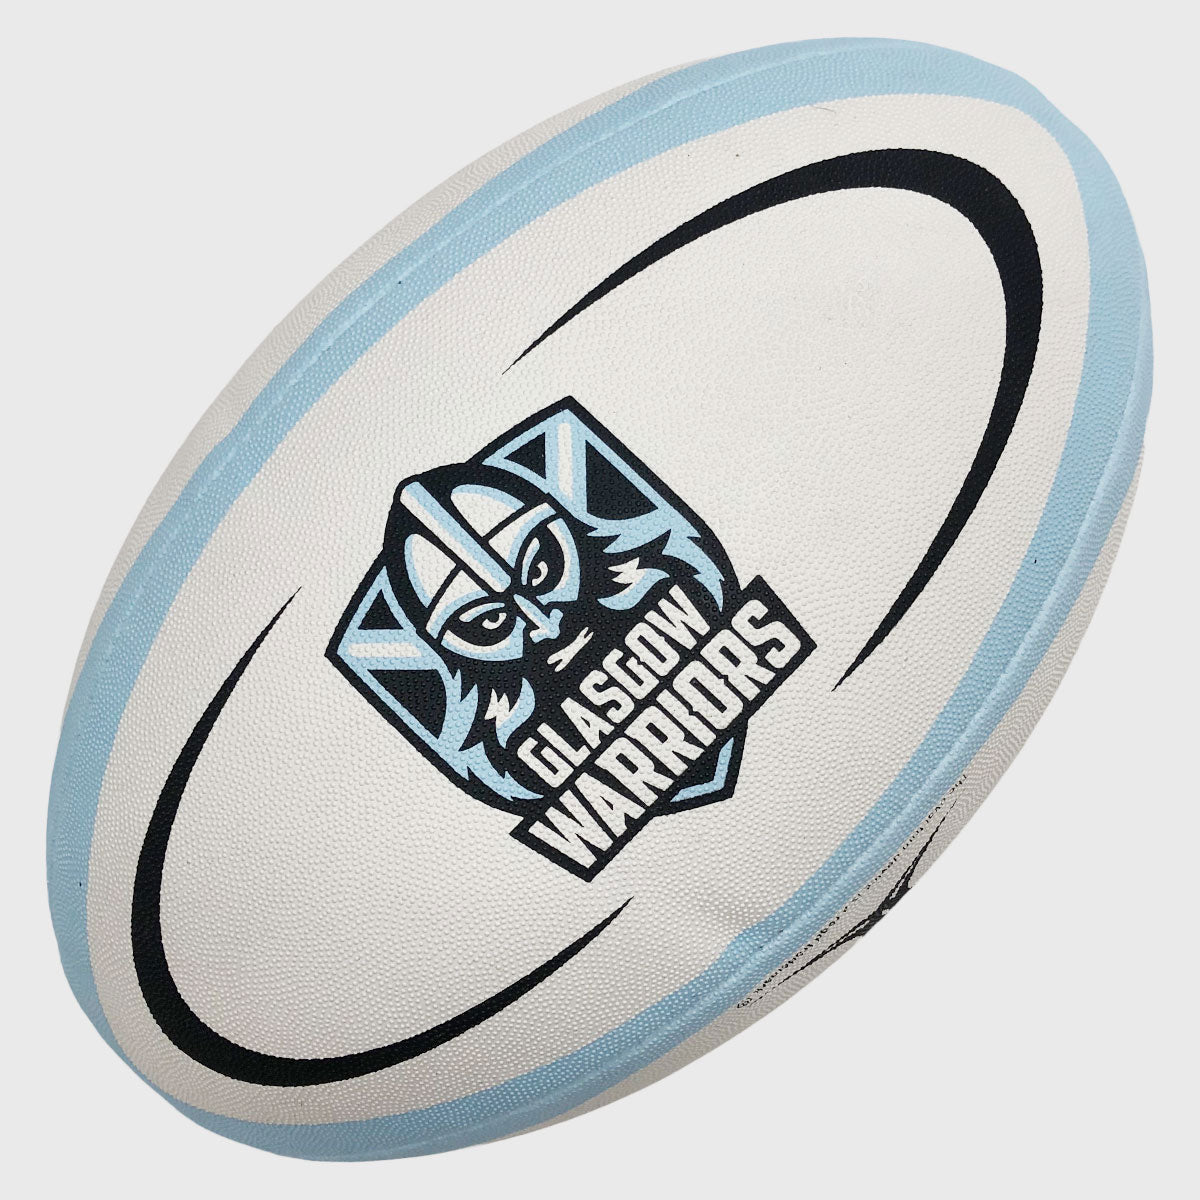 Glasgow Warriors Replica Rugby Ball 2019/20